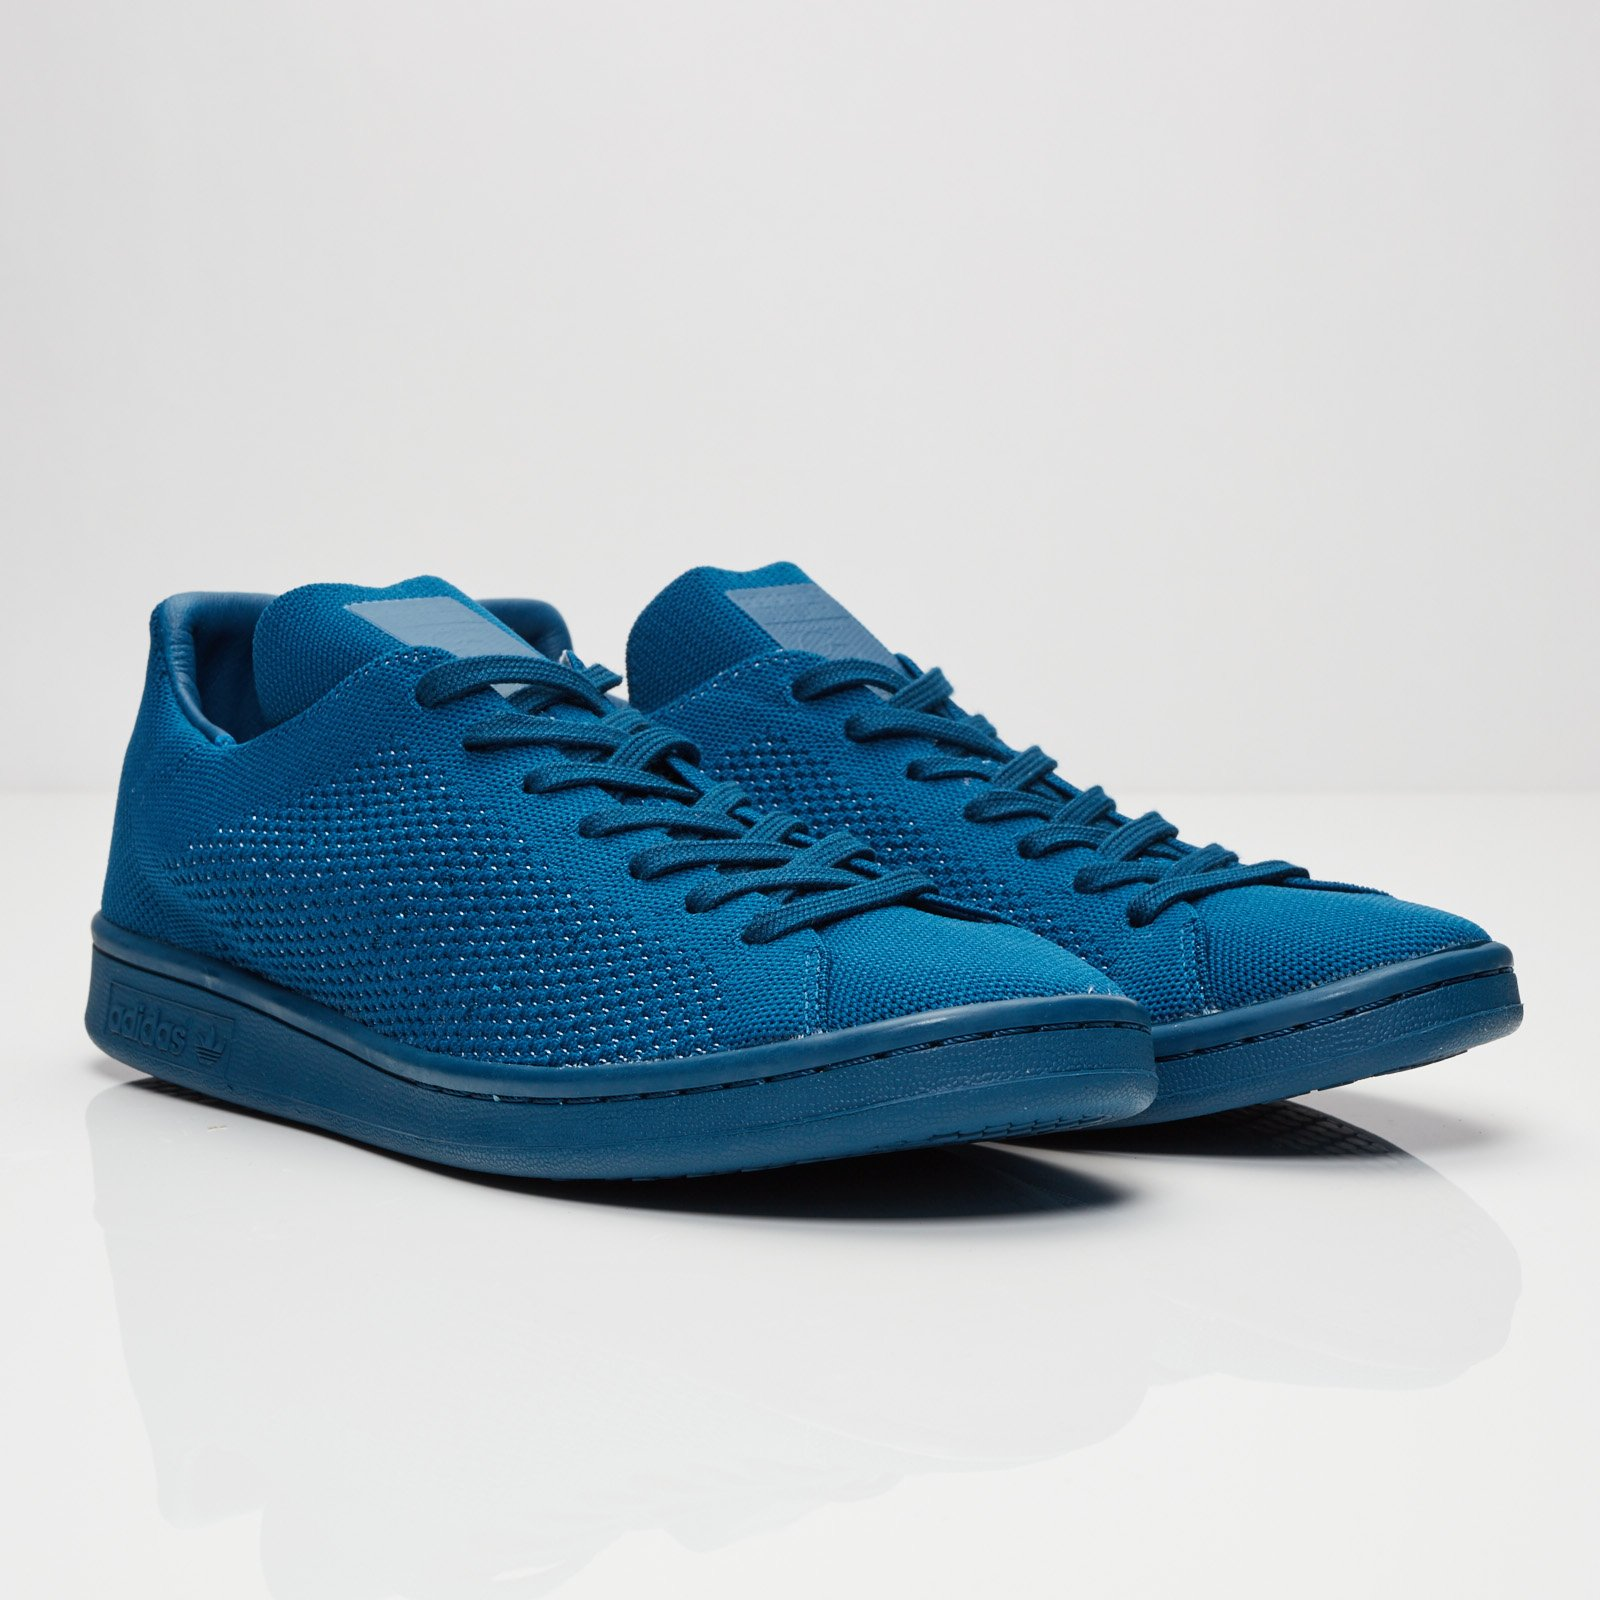 9f7707487874 adidas Stan Smith PK - S80067 - Sneakersnstuff